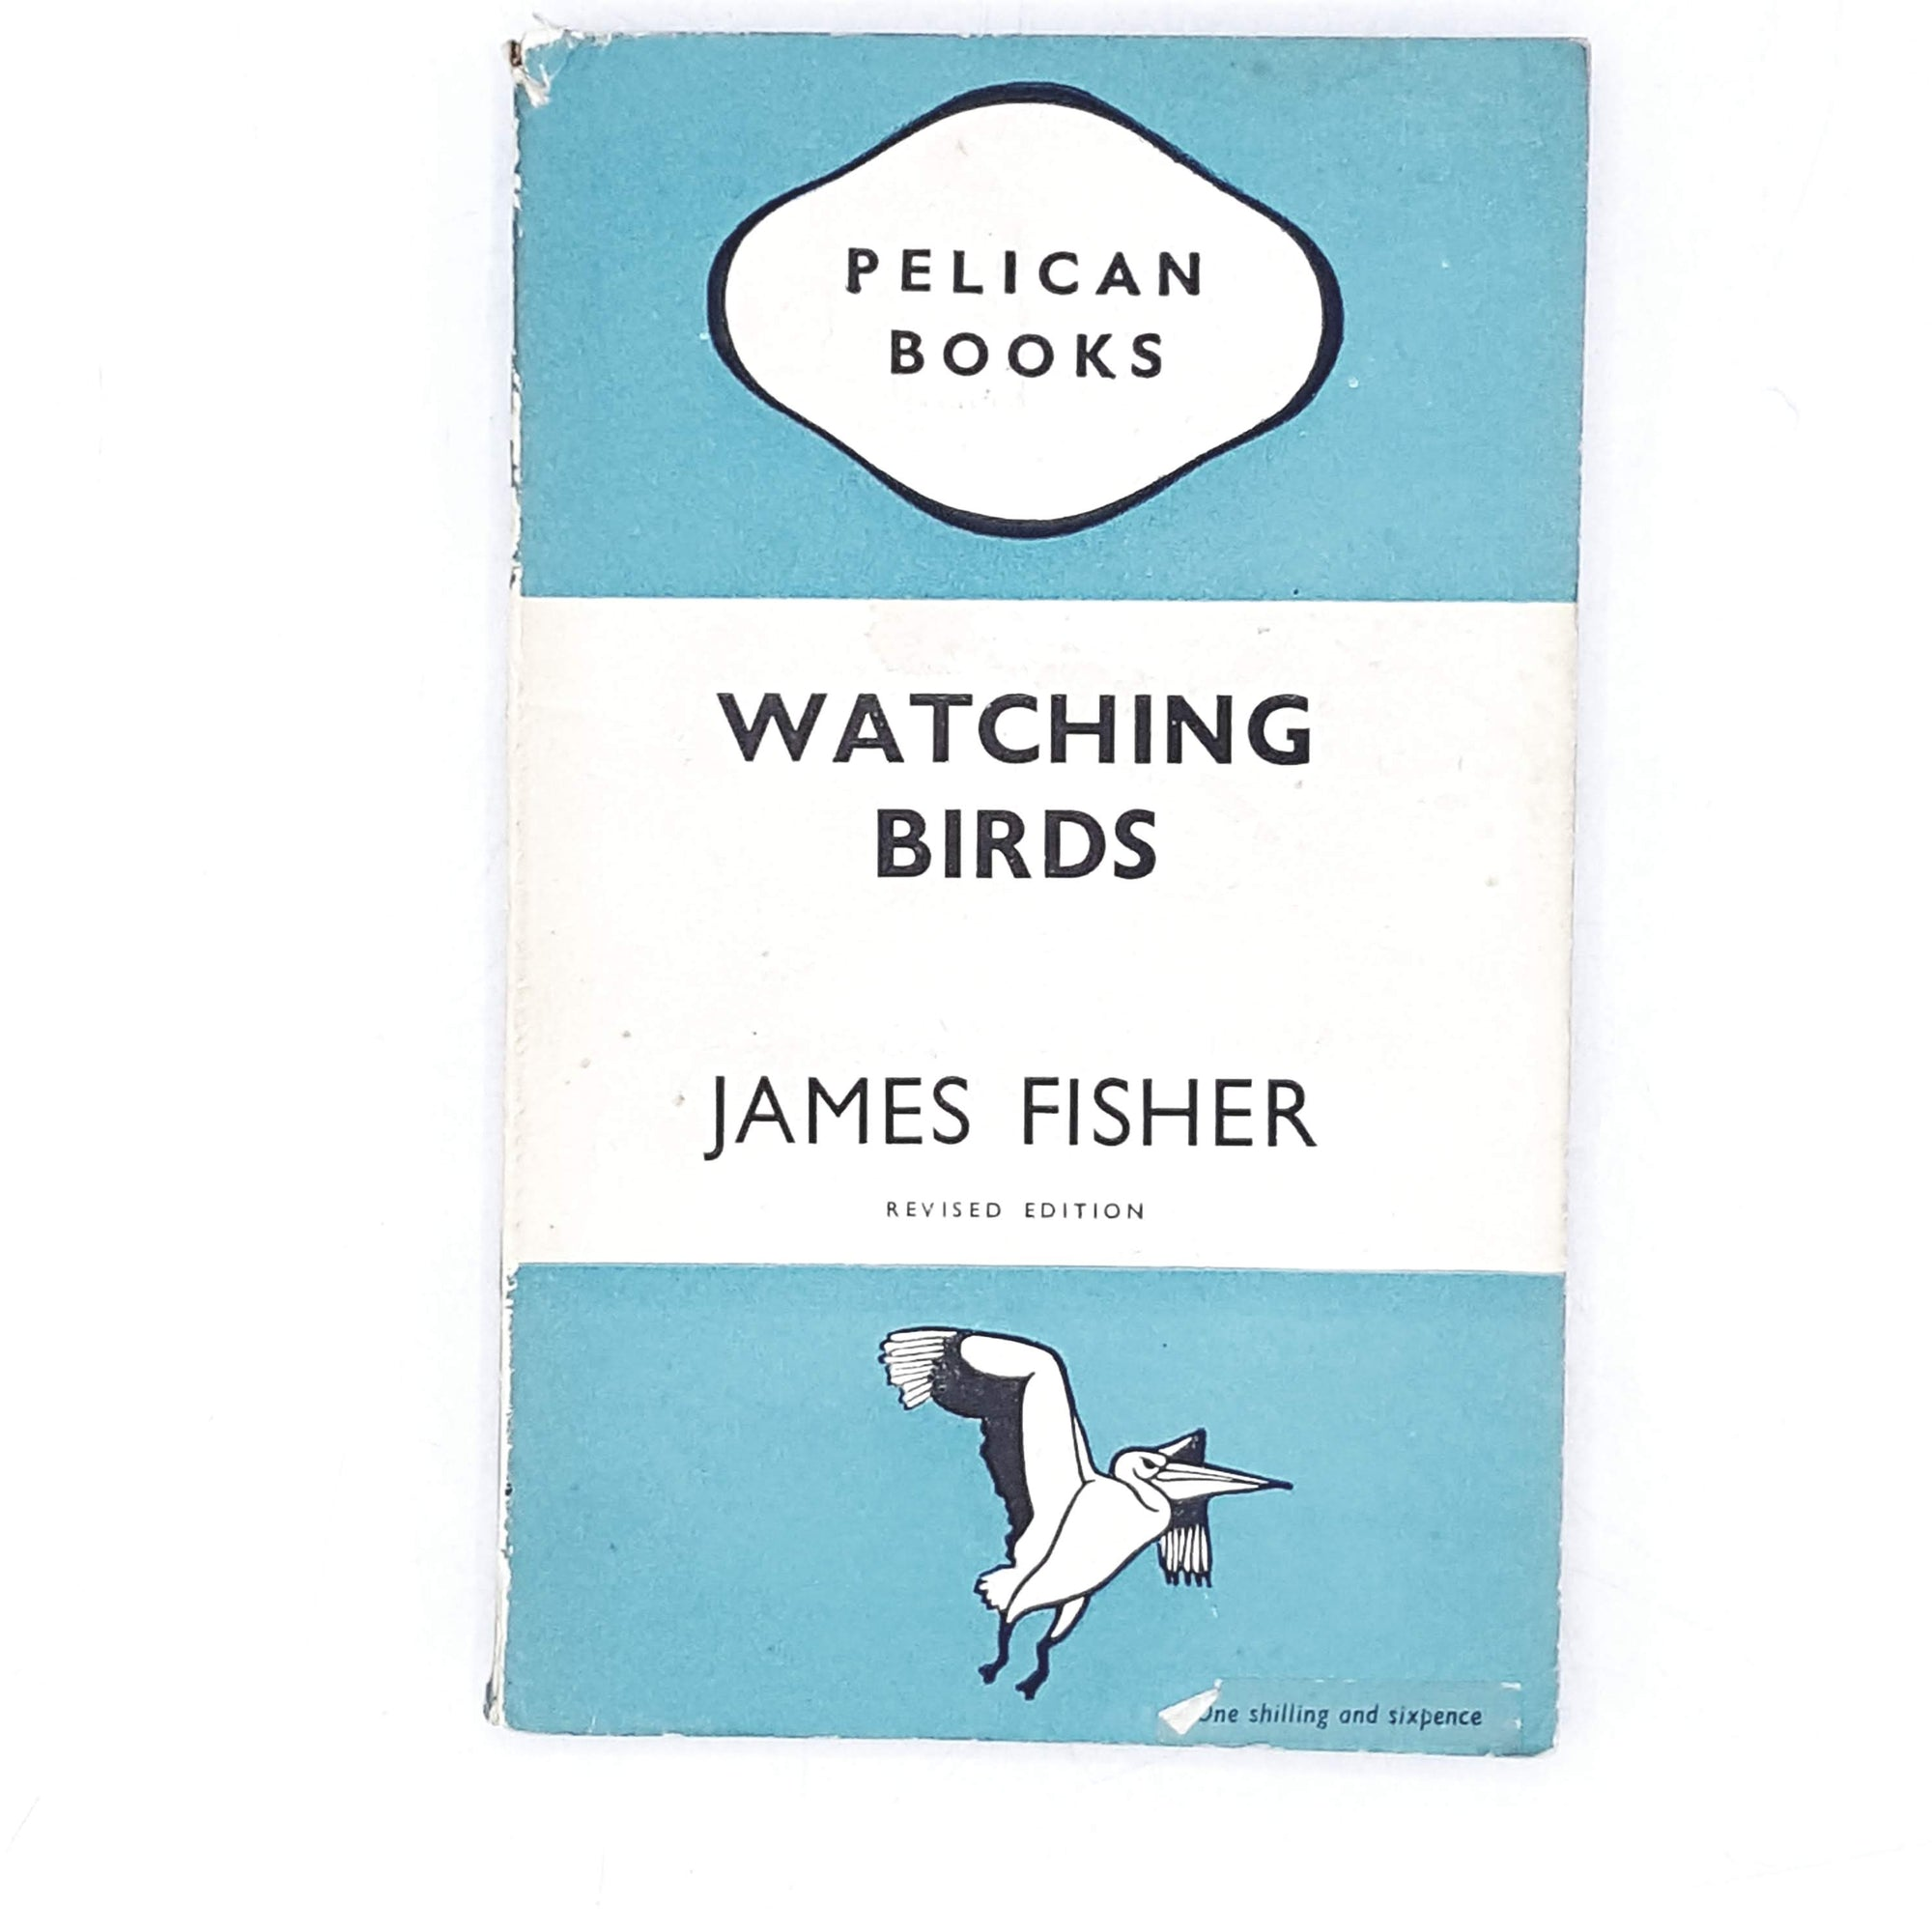 Vintage Pelican: Watching Birds by James Fisher 1946